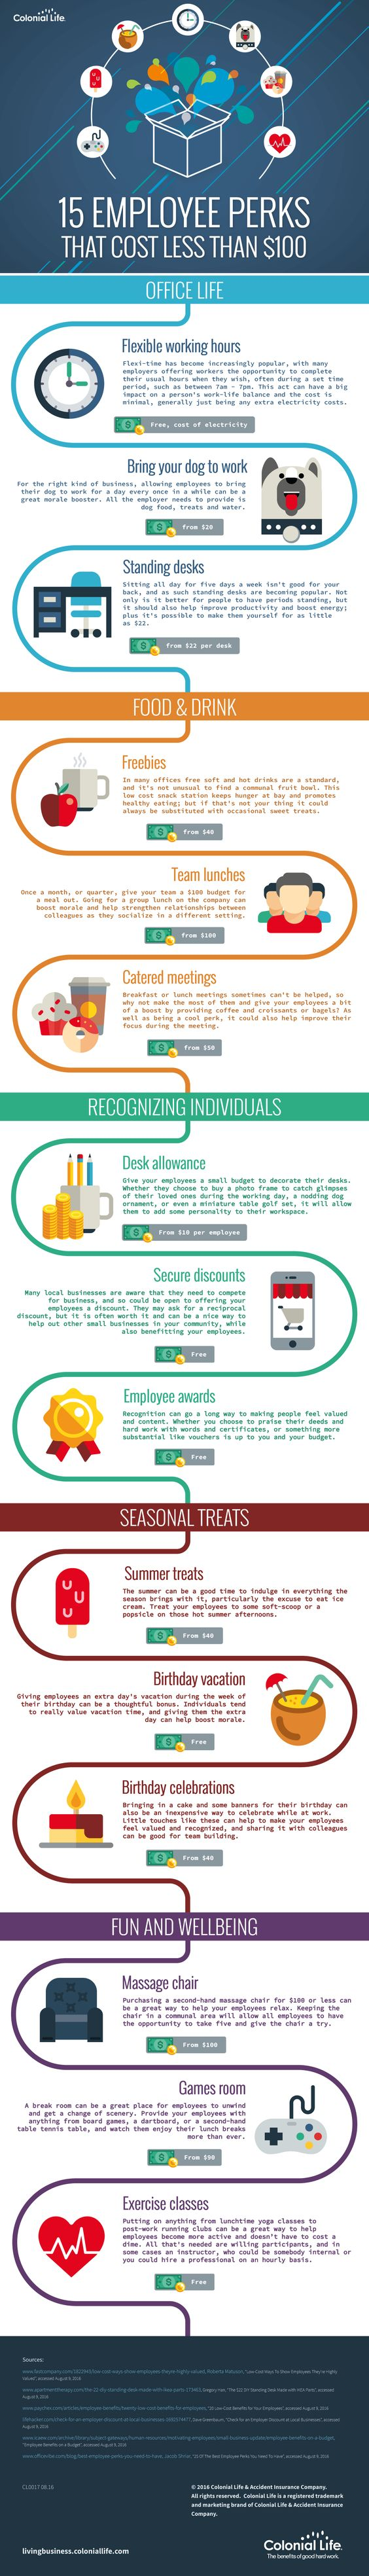 15 Employee Perks That Cost Less than $100 #infographic #EmployeeBenefits